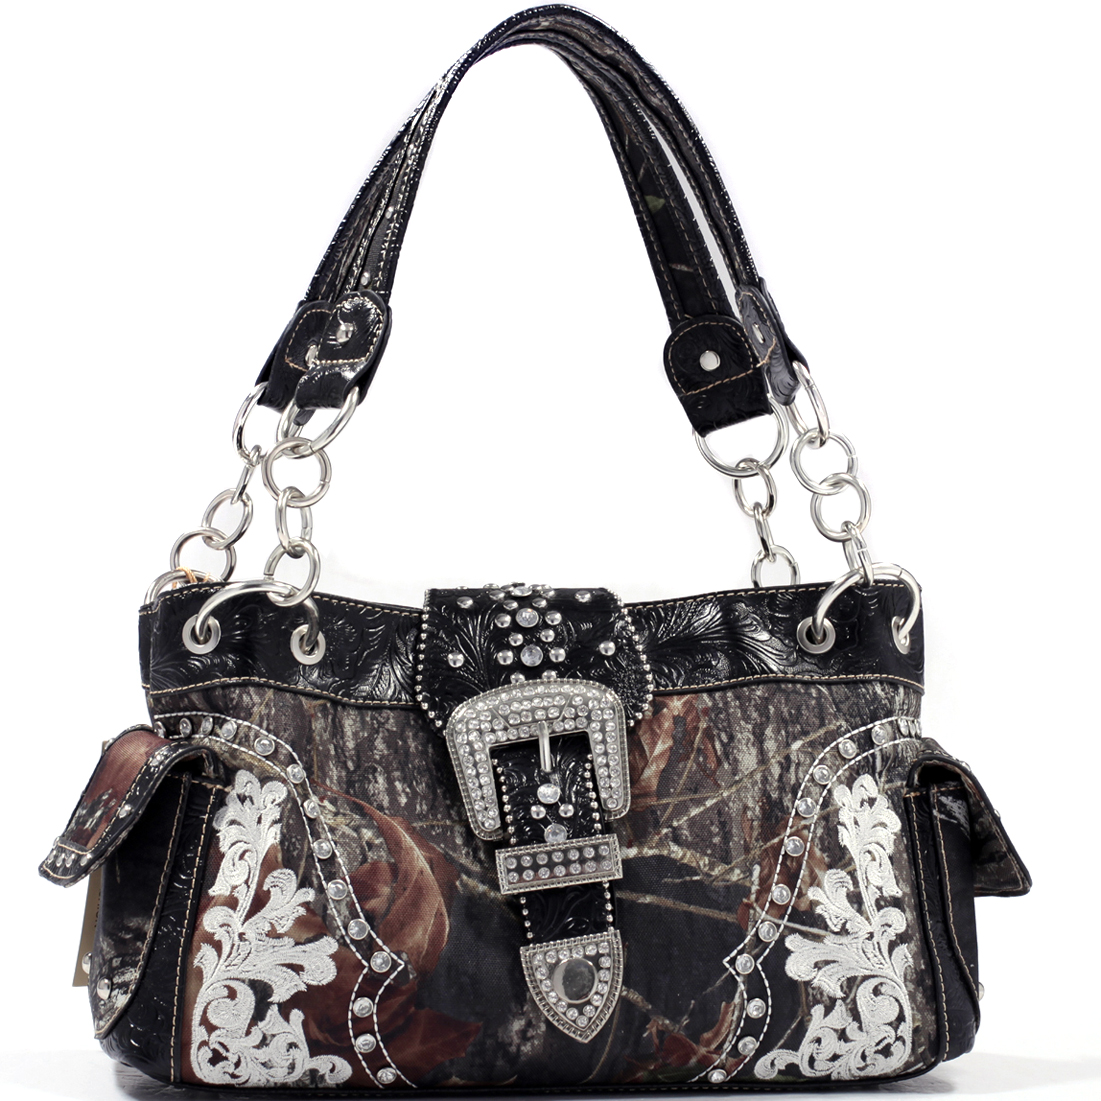 Mossy Oak Rhinestone Buckle Shoulder Bag